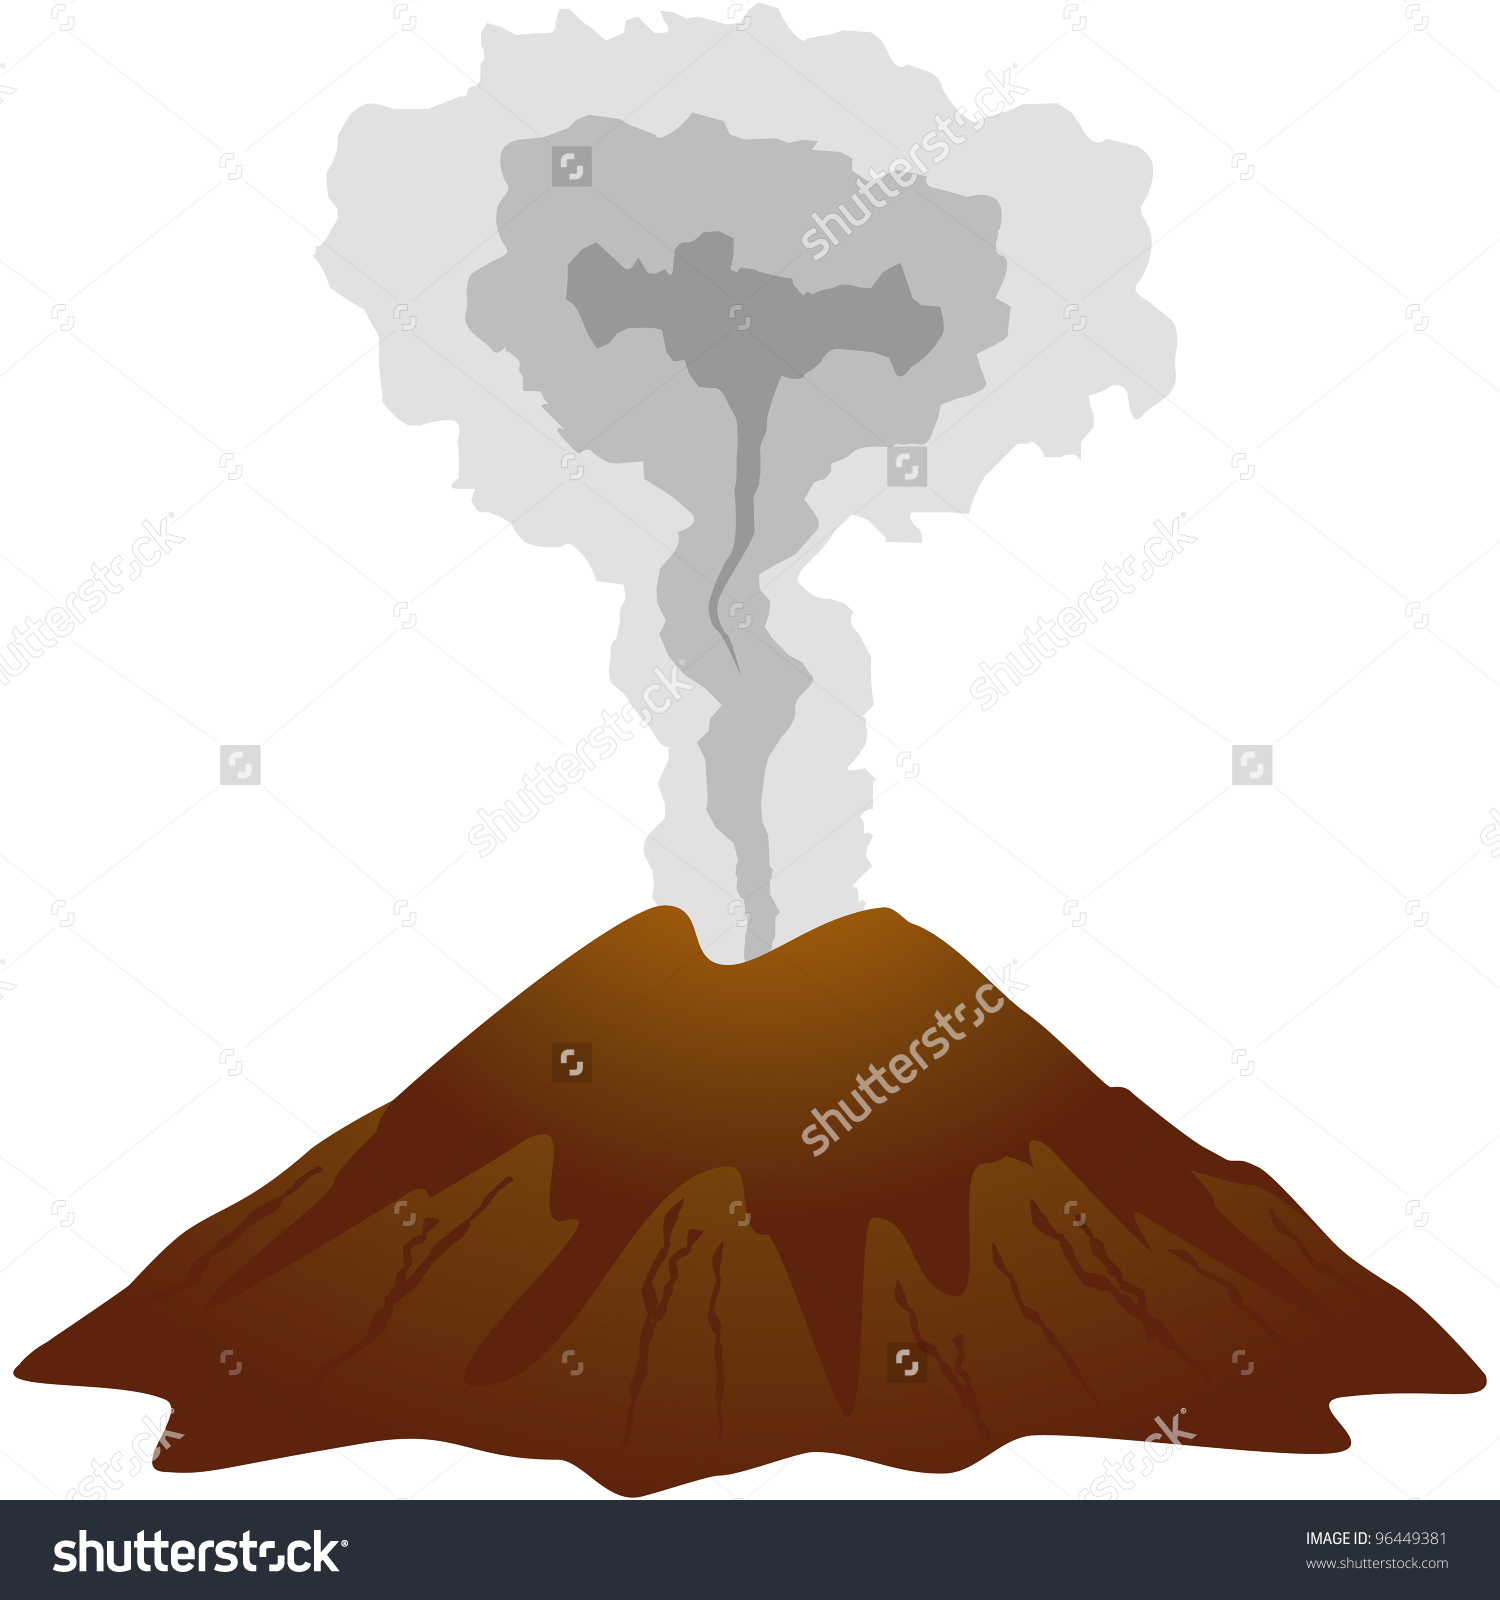 Dormant Volcano Icon Isolated On White Stock Vector 96449381.